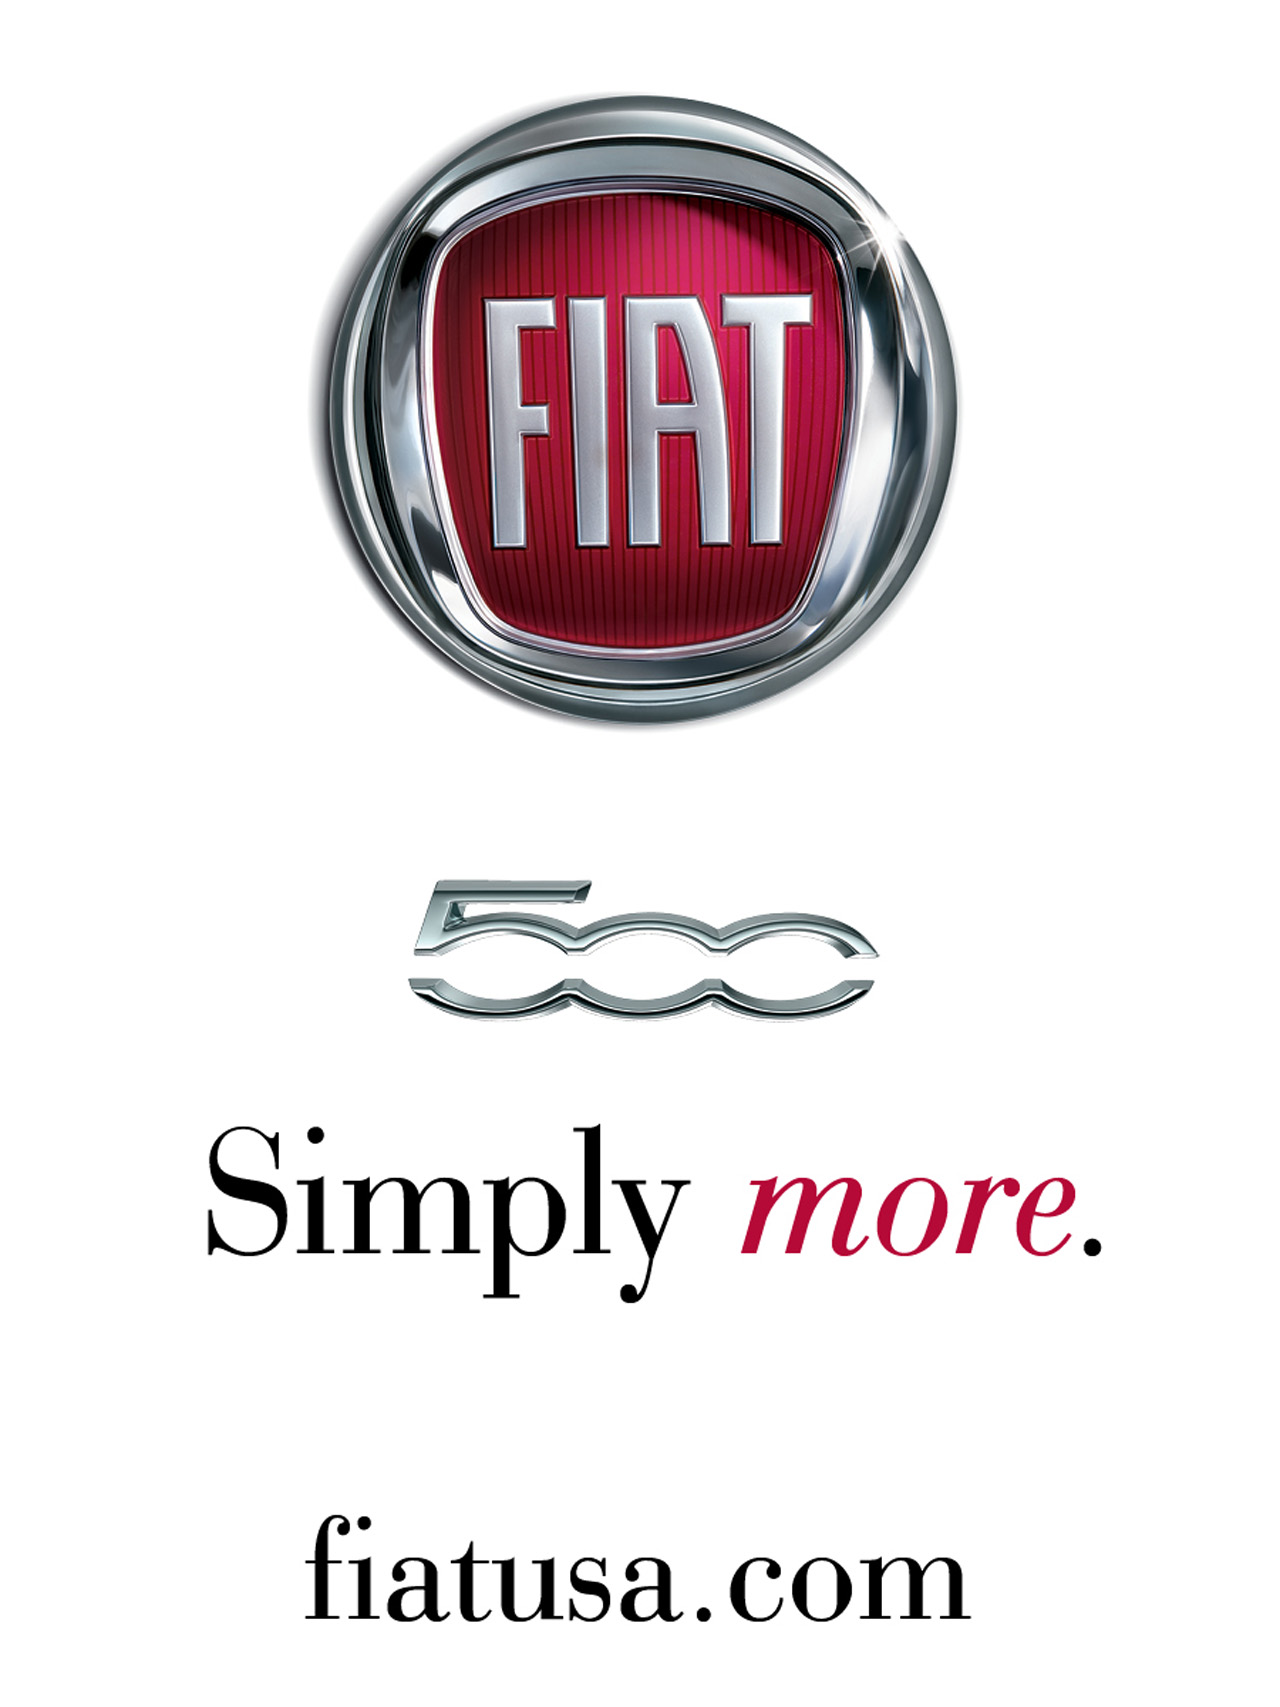 Fiat 500 Marketing Collateral Photo Gallery